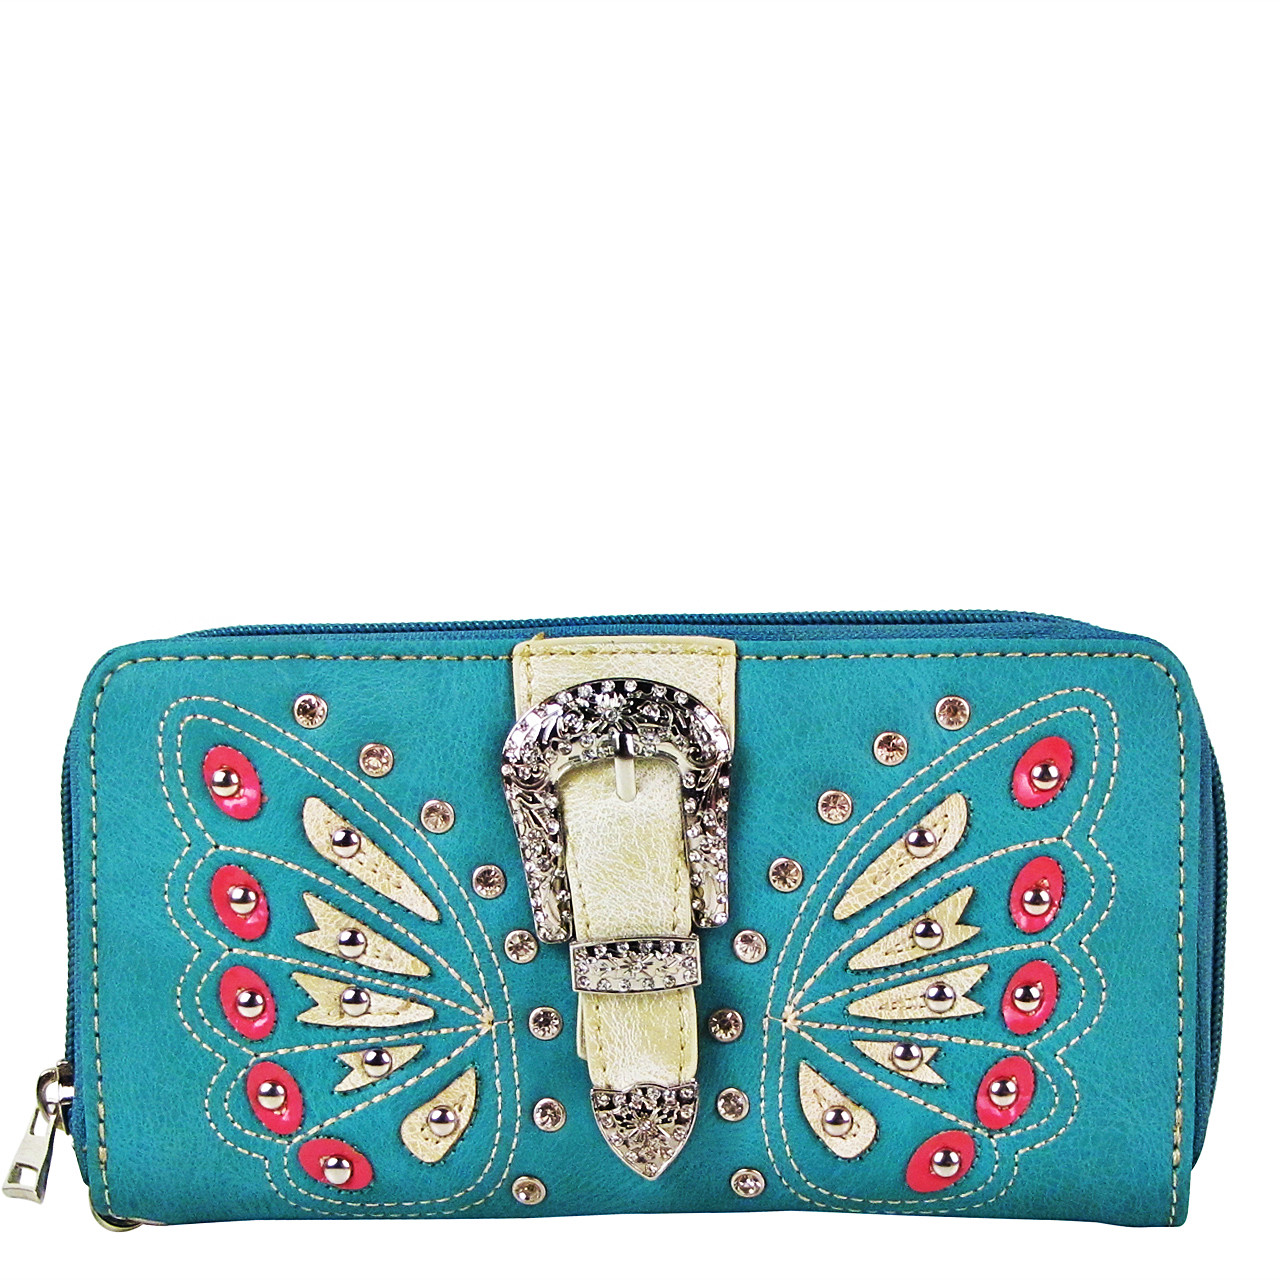 TURQUOISE BUTTERFLY RHINESTONE BUCKLE LOOK ZIPPER WALLET CB3-1211TRQ